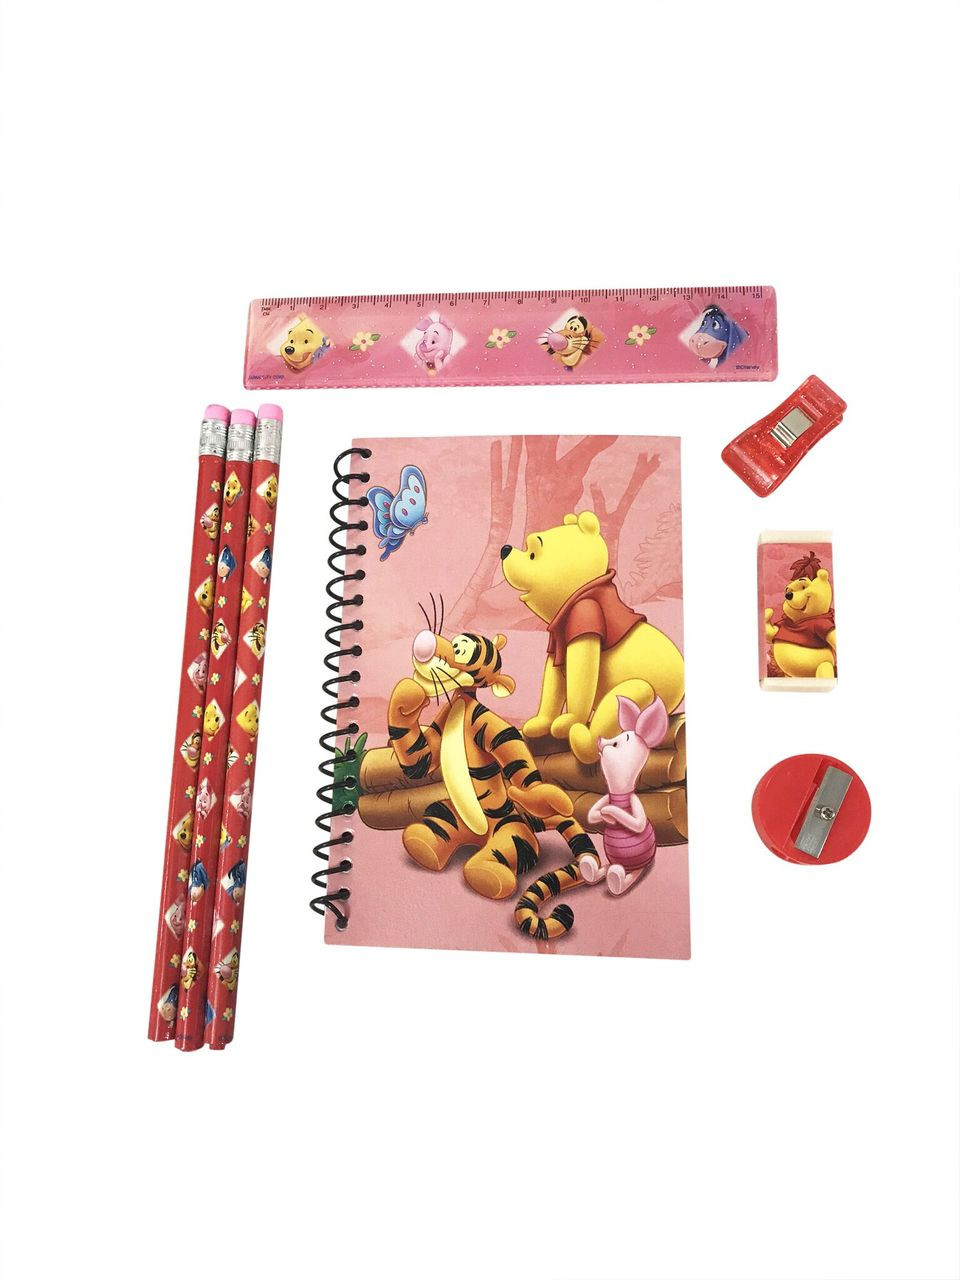 Stationery Set - Winnie the Pooh - Red - 6pc Favor Set